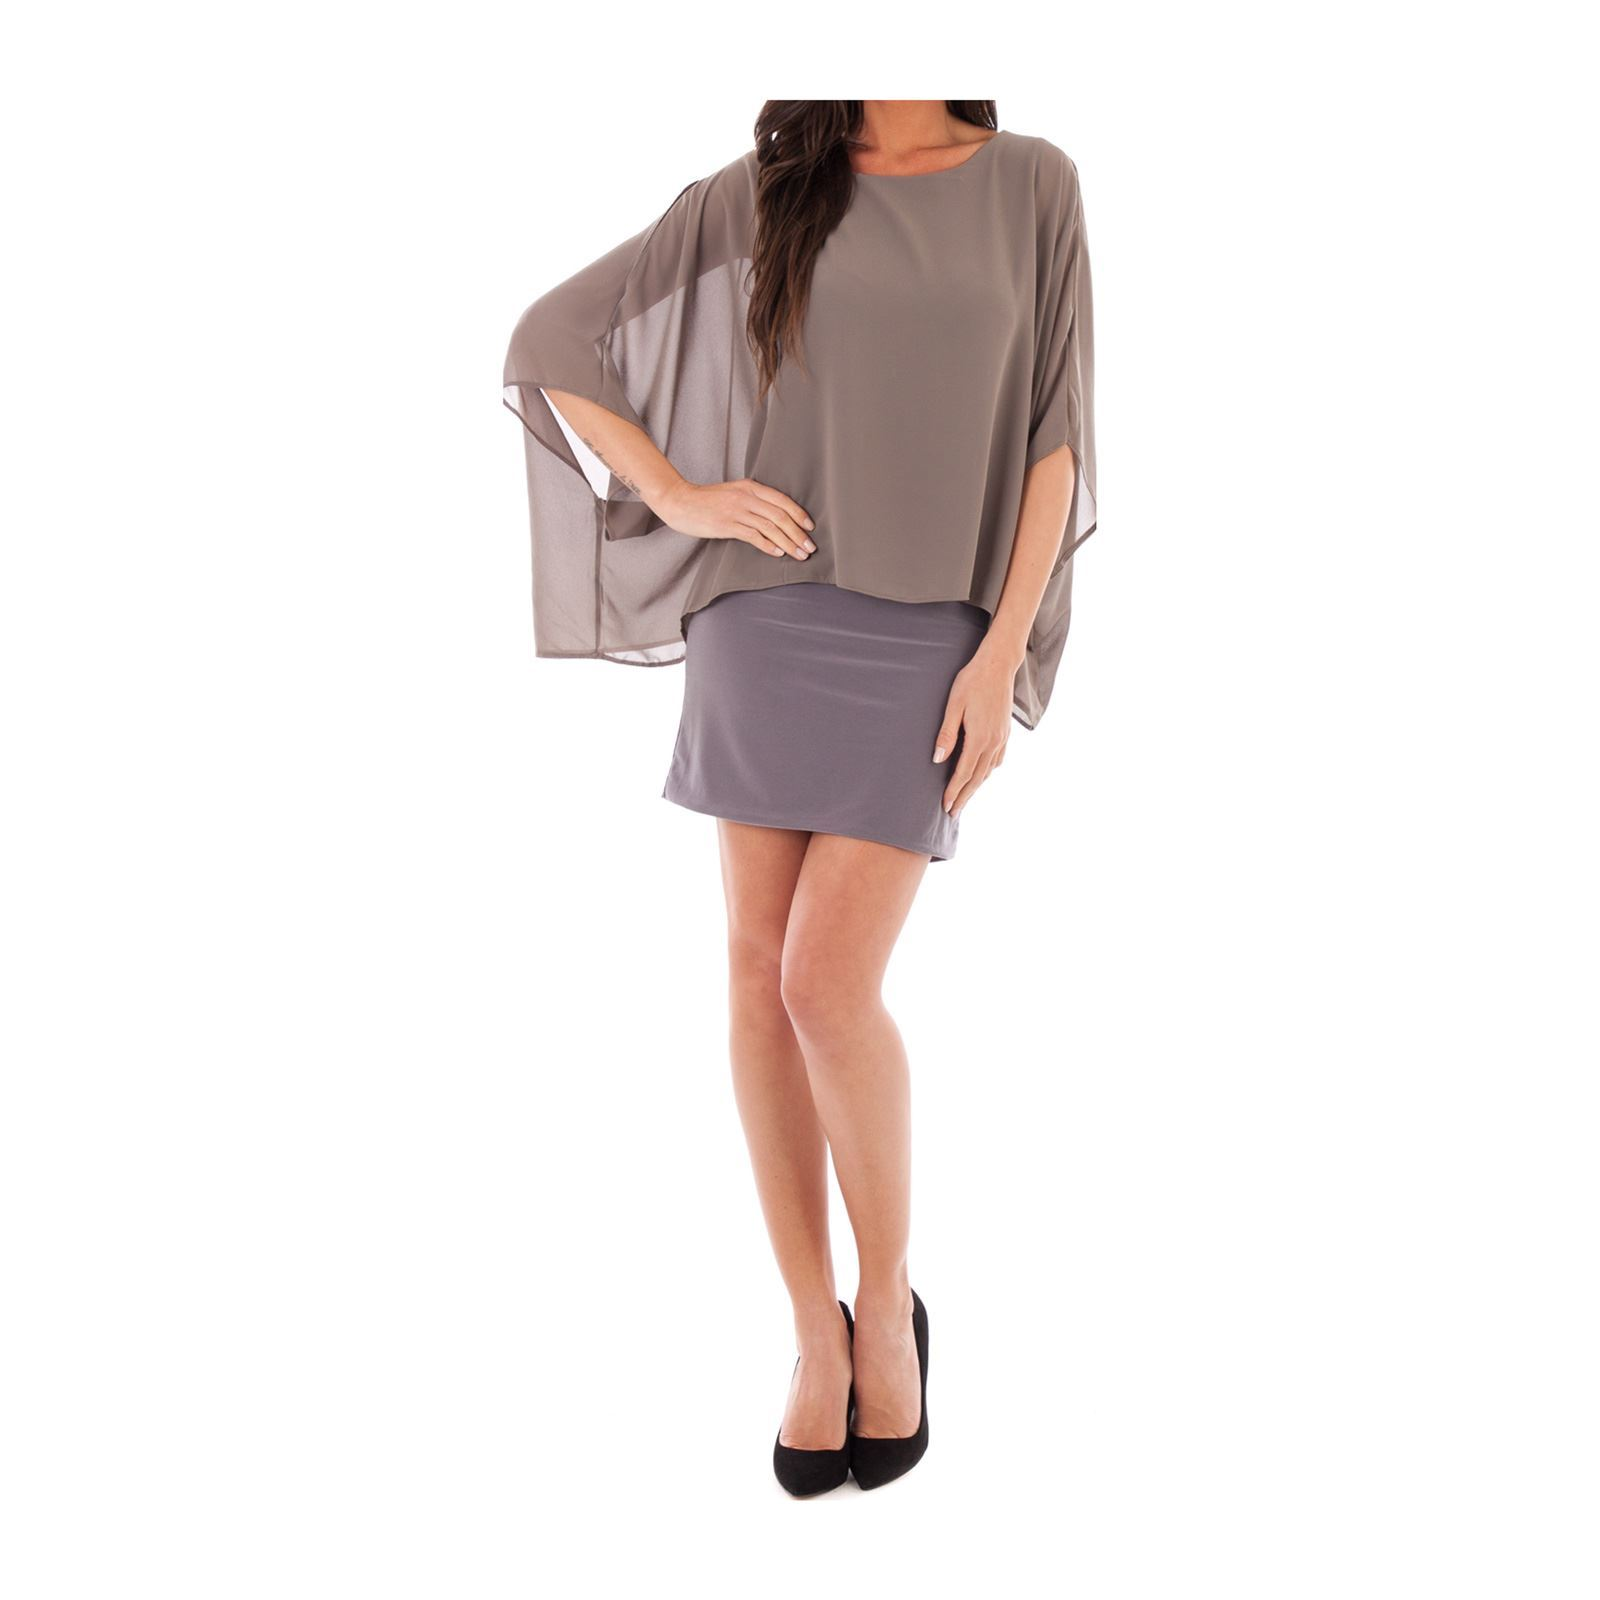 Femme TopTaupe Rose TopTaupe V Rose xdCeWoQrB